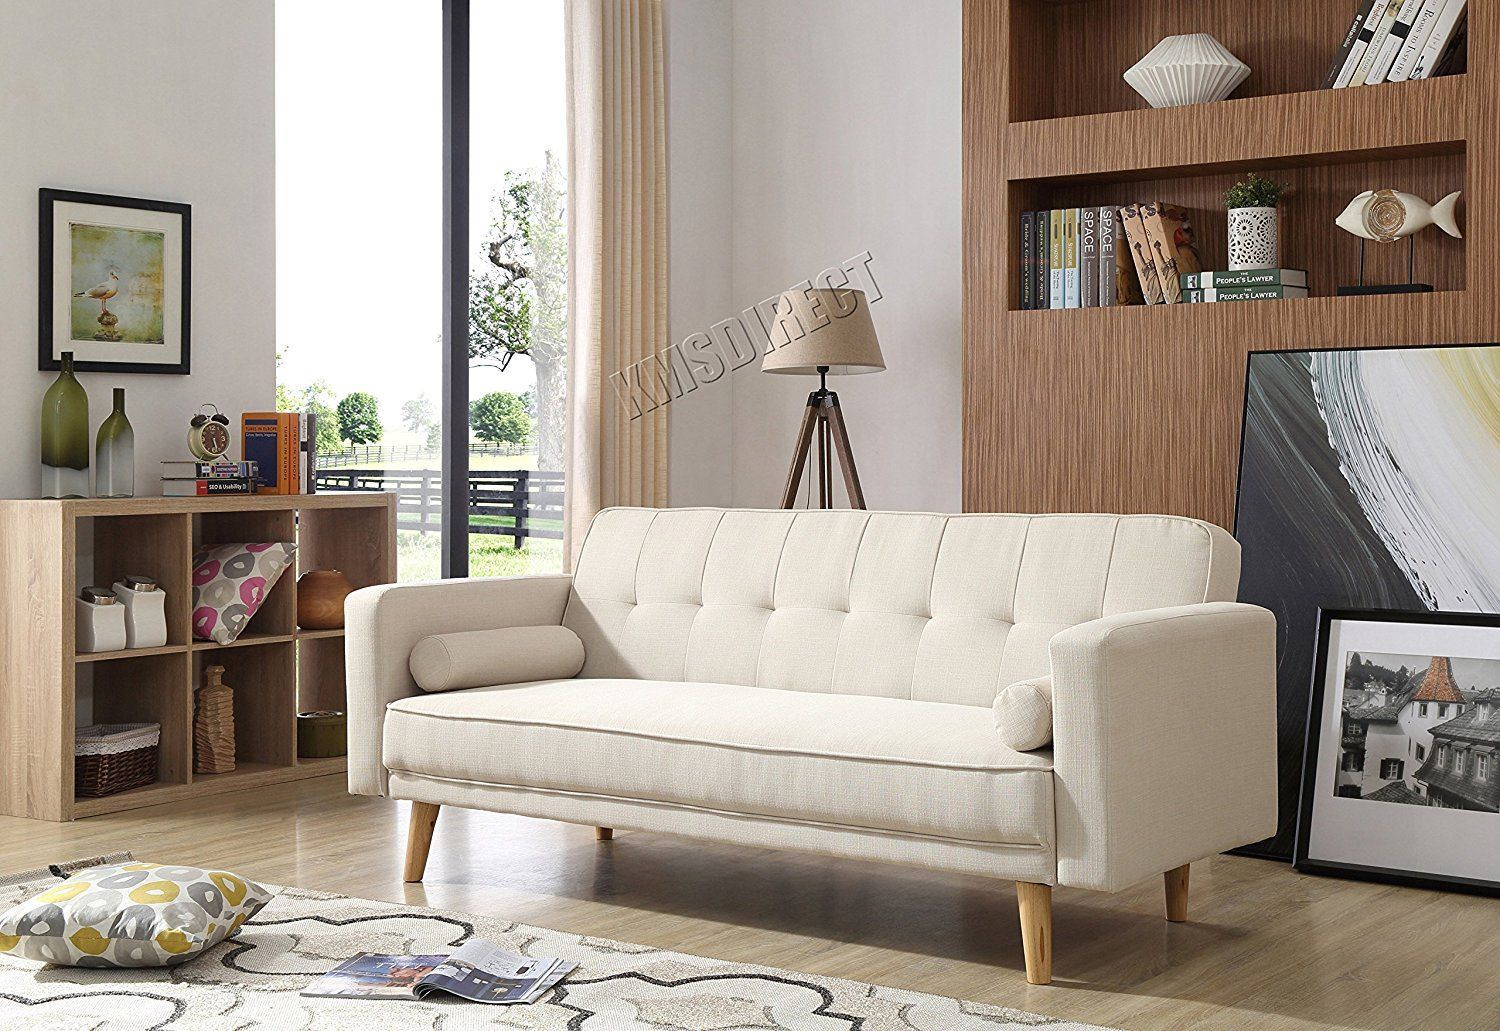 WestWood Fabric Sofa Bed Recliner Couch 3 Seater With 2